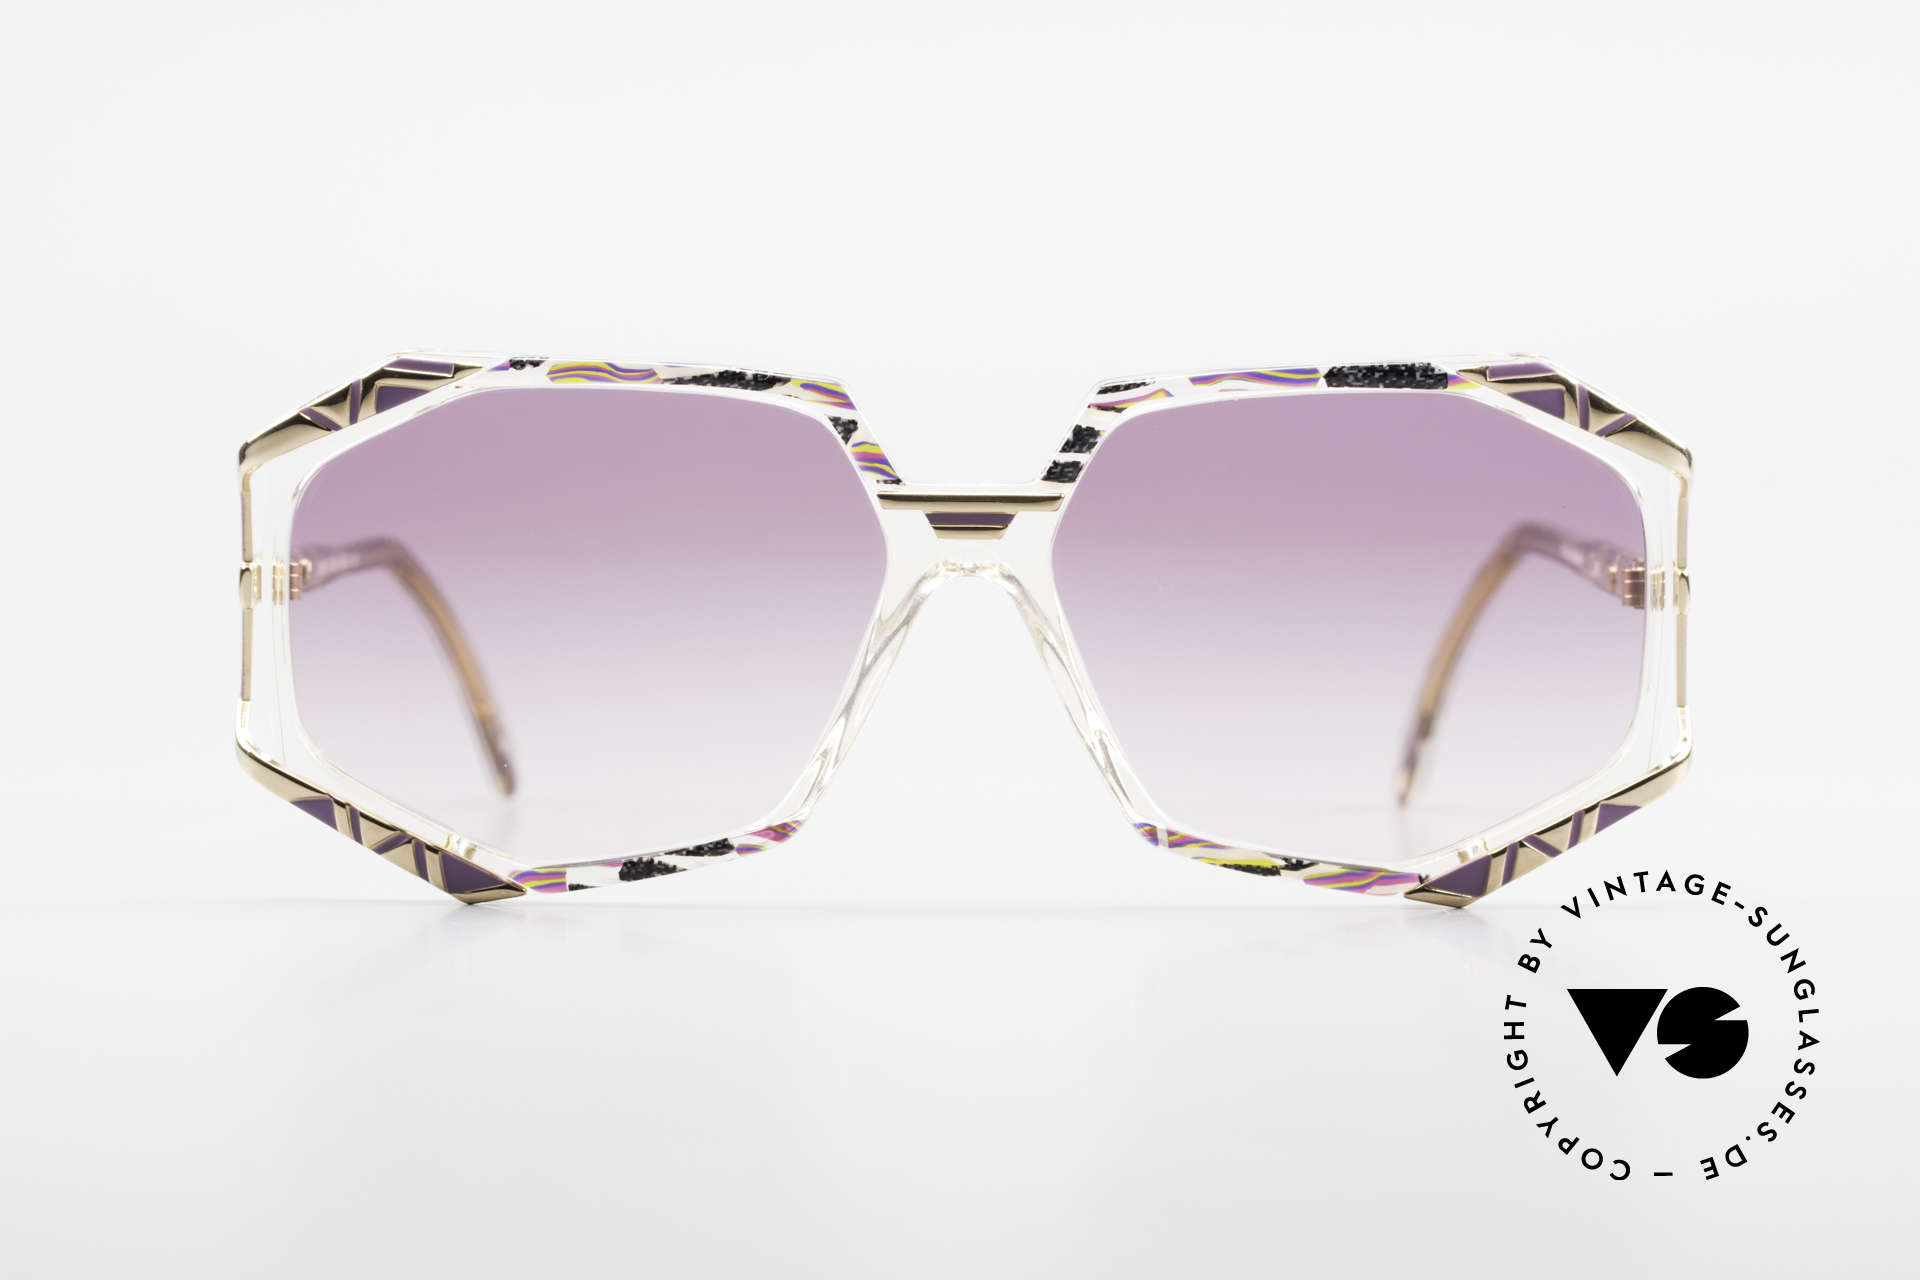 Cazal 355 Extraordinary 90's Cazal Frame, distinctive combination of colors, shape and materials, Made for Women